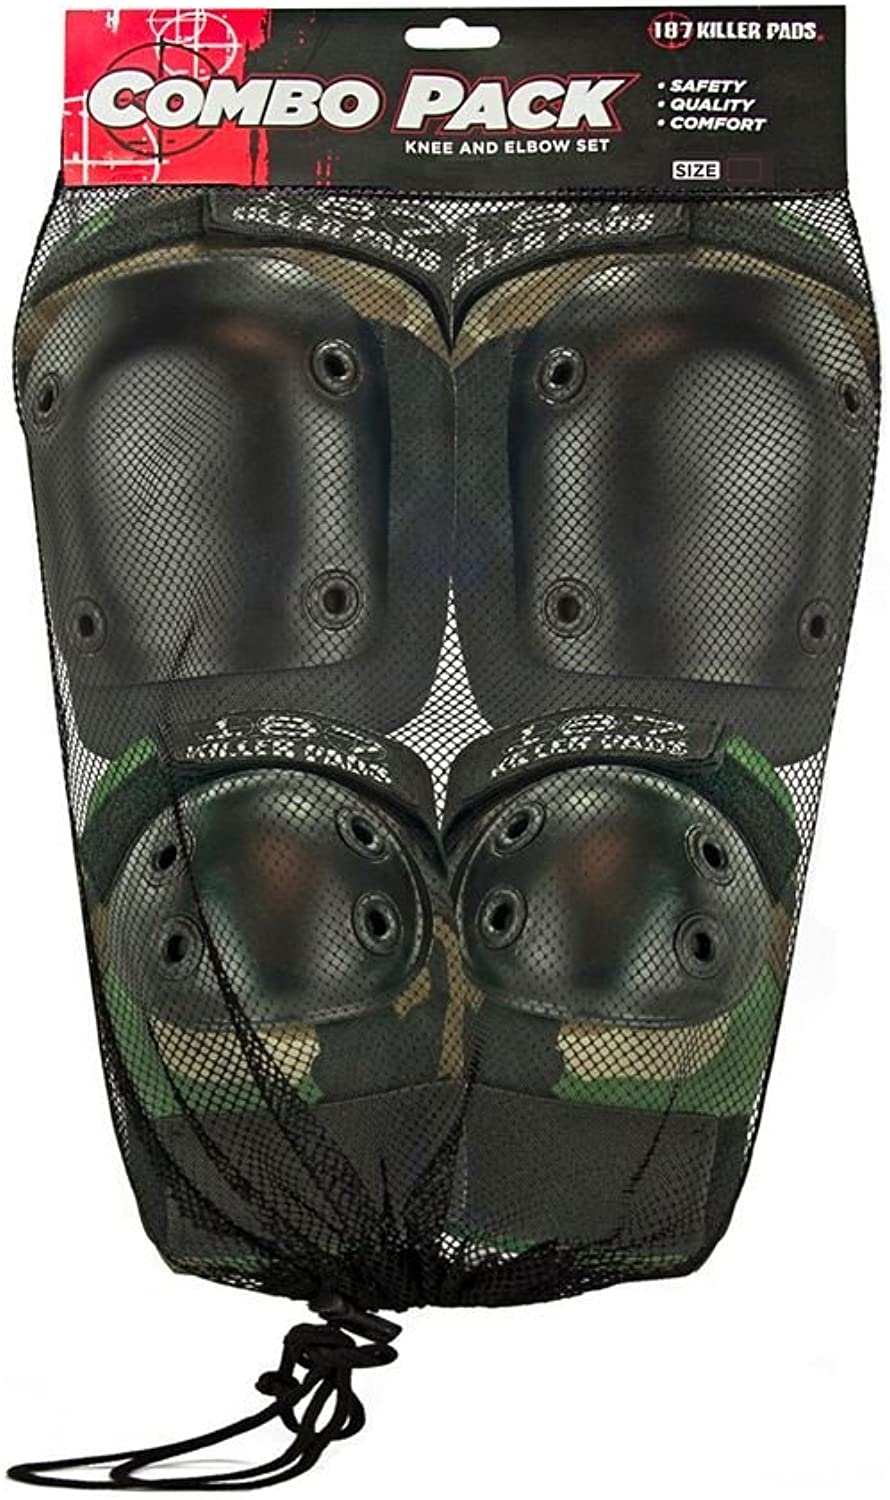 187 Killer Pads Camo Knee & Elbow Pad Set  XSmall